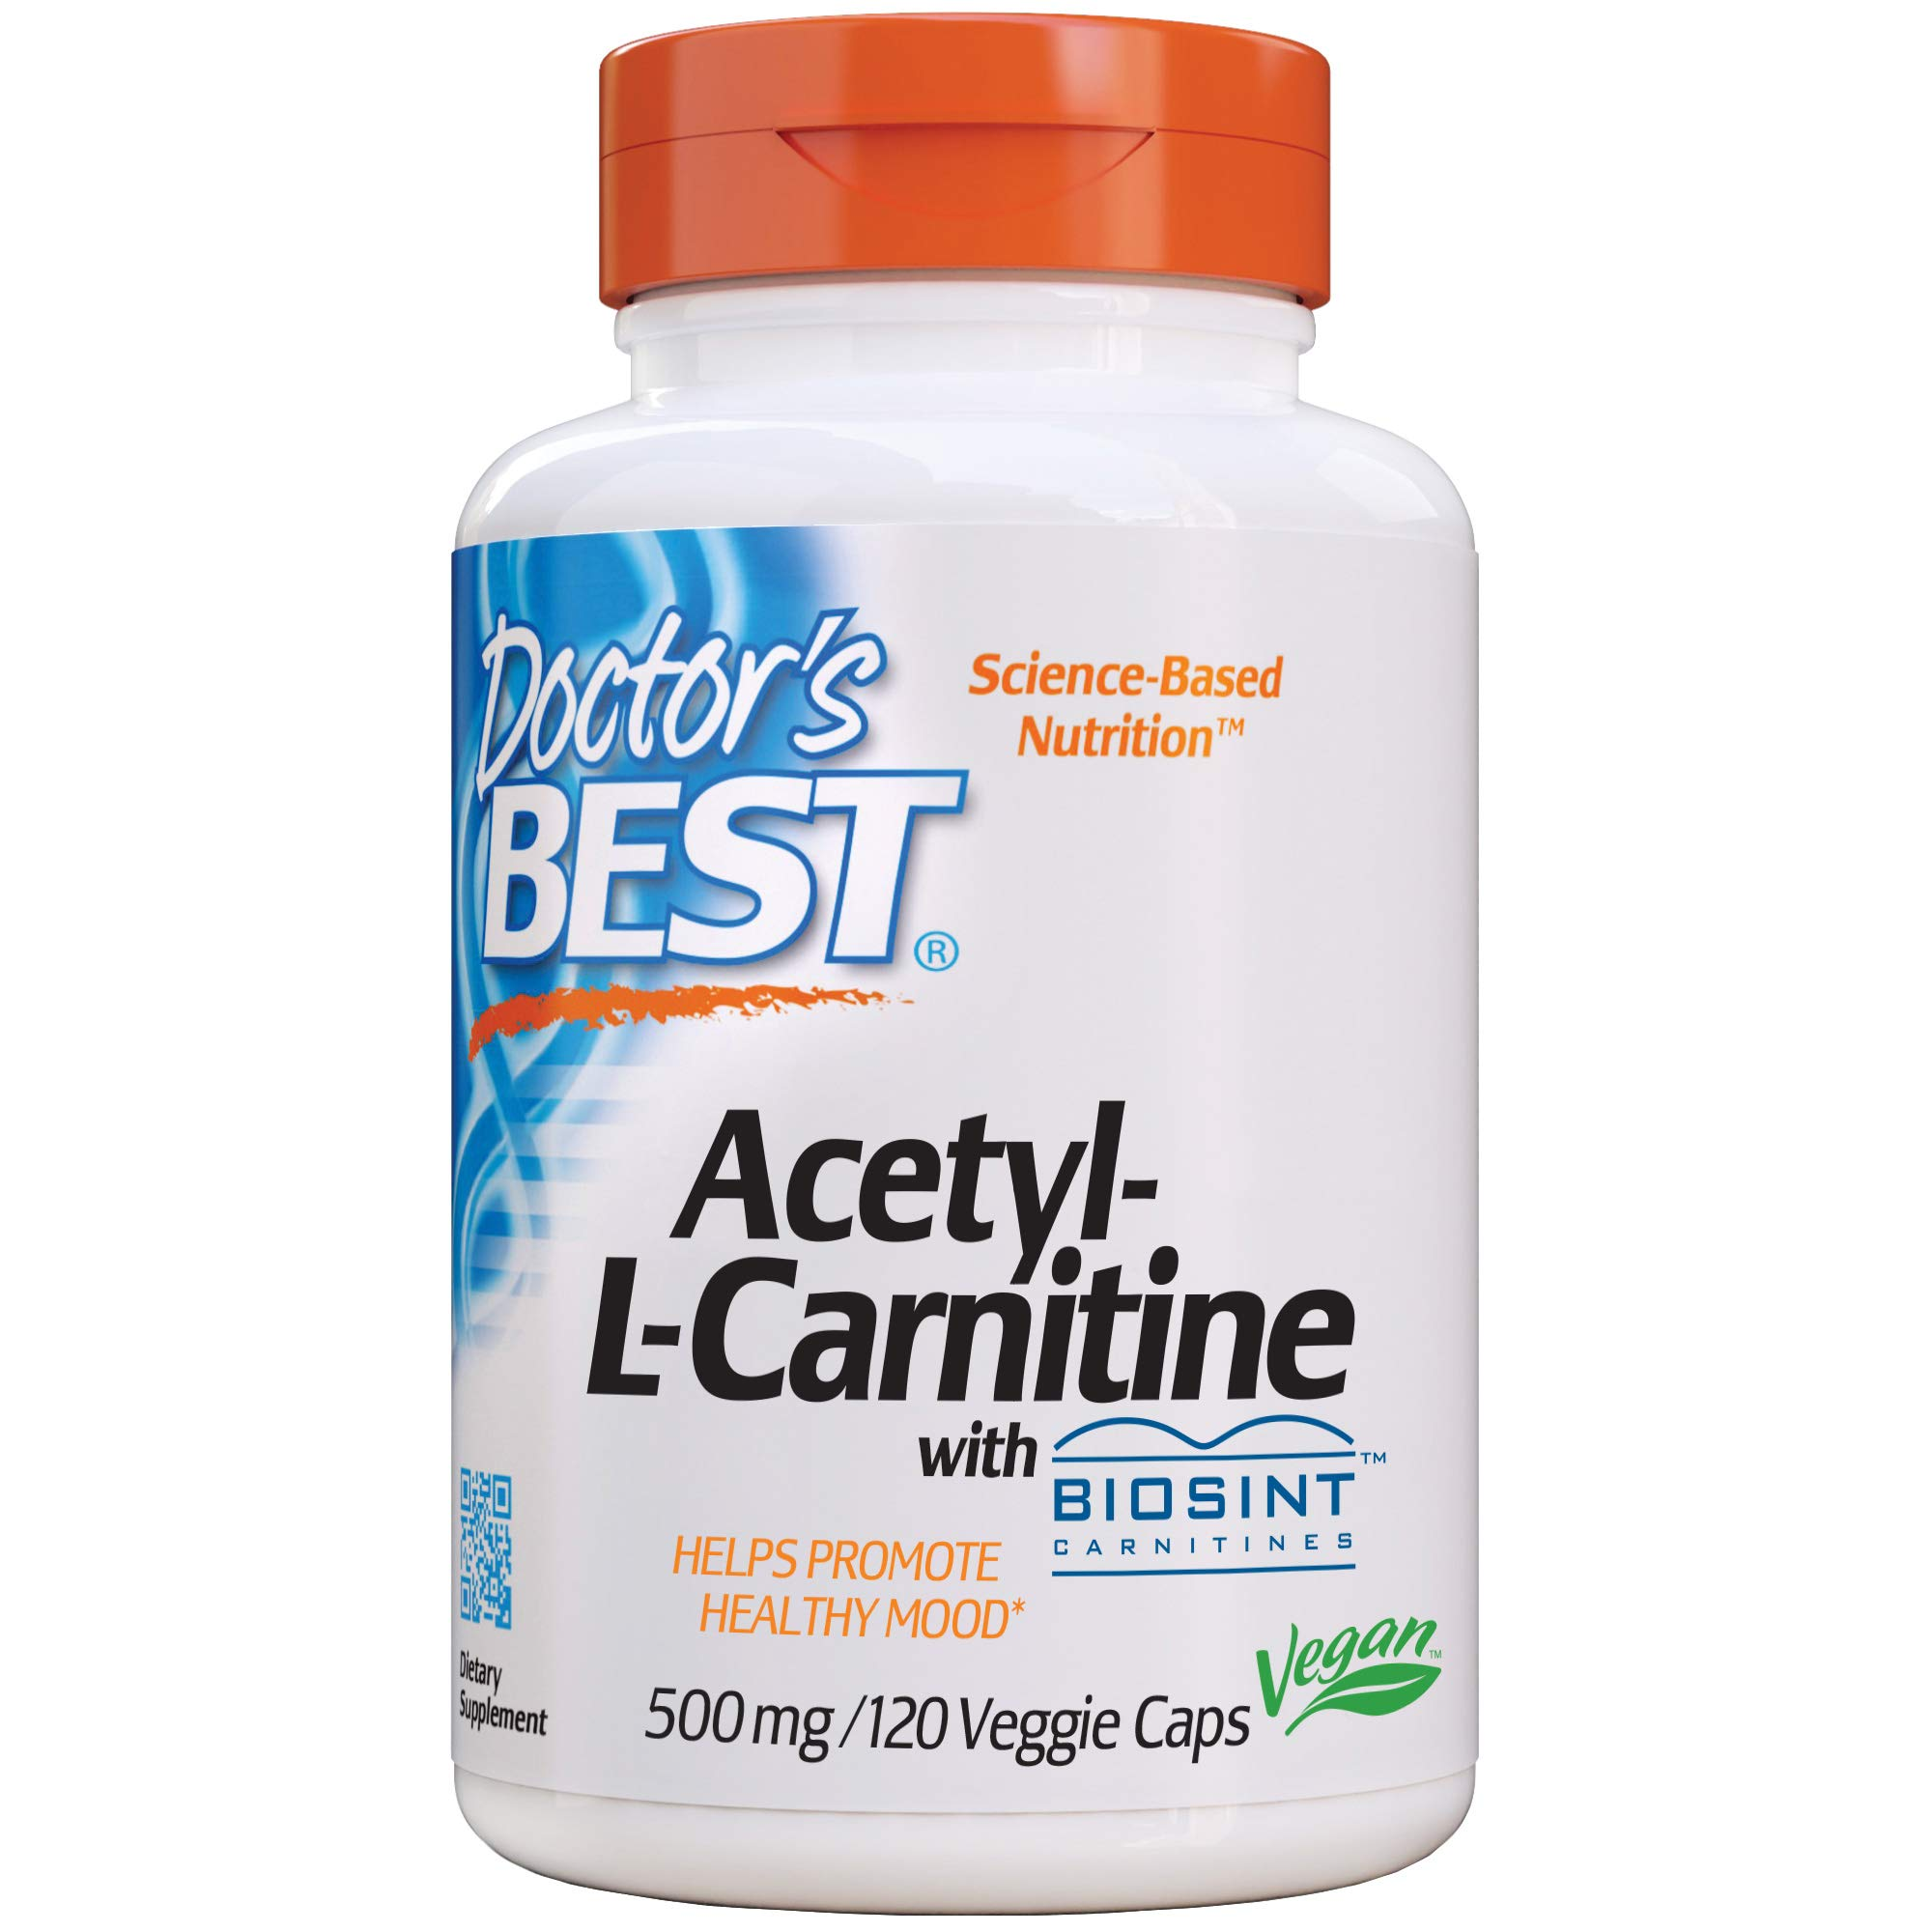 Doctor's Best Acetyl L-Carnitine, Help Boost Energy Production, Support Memory/Focus, Mood, Non-GMO, Vegan, Gluten Free, 120 Count (Pack of 1) (DRB-00152)